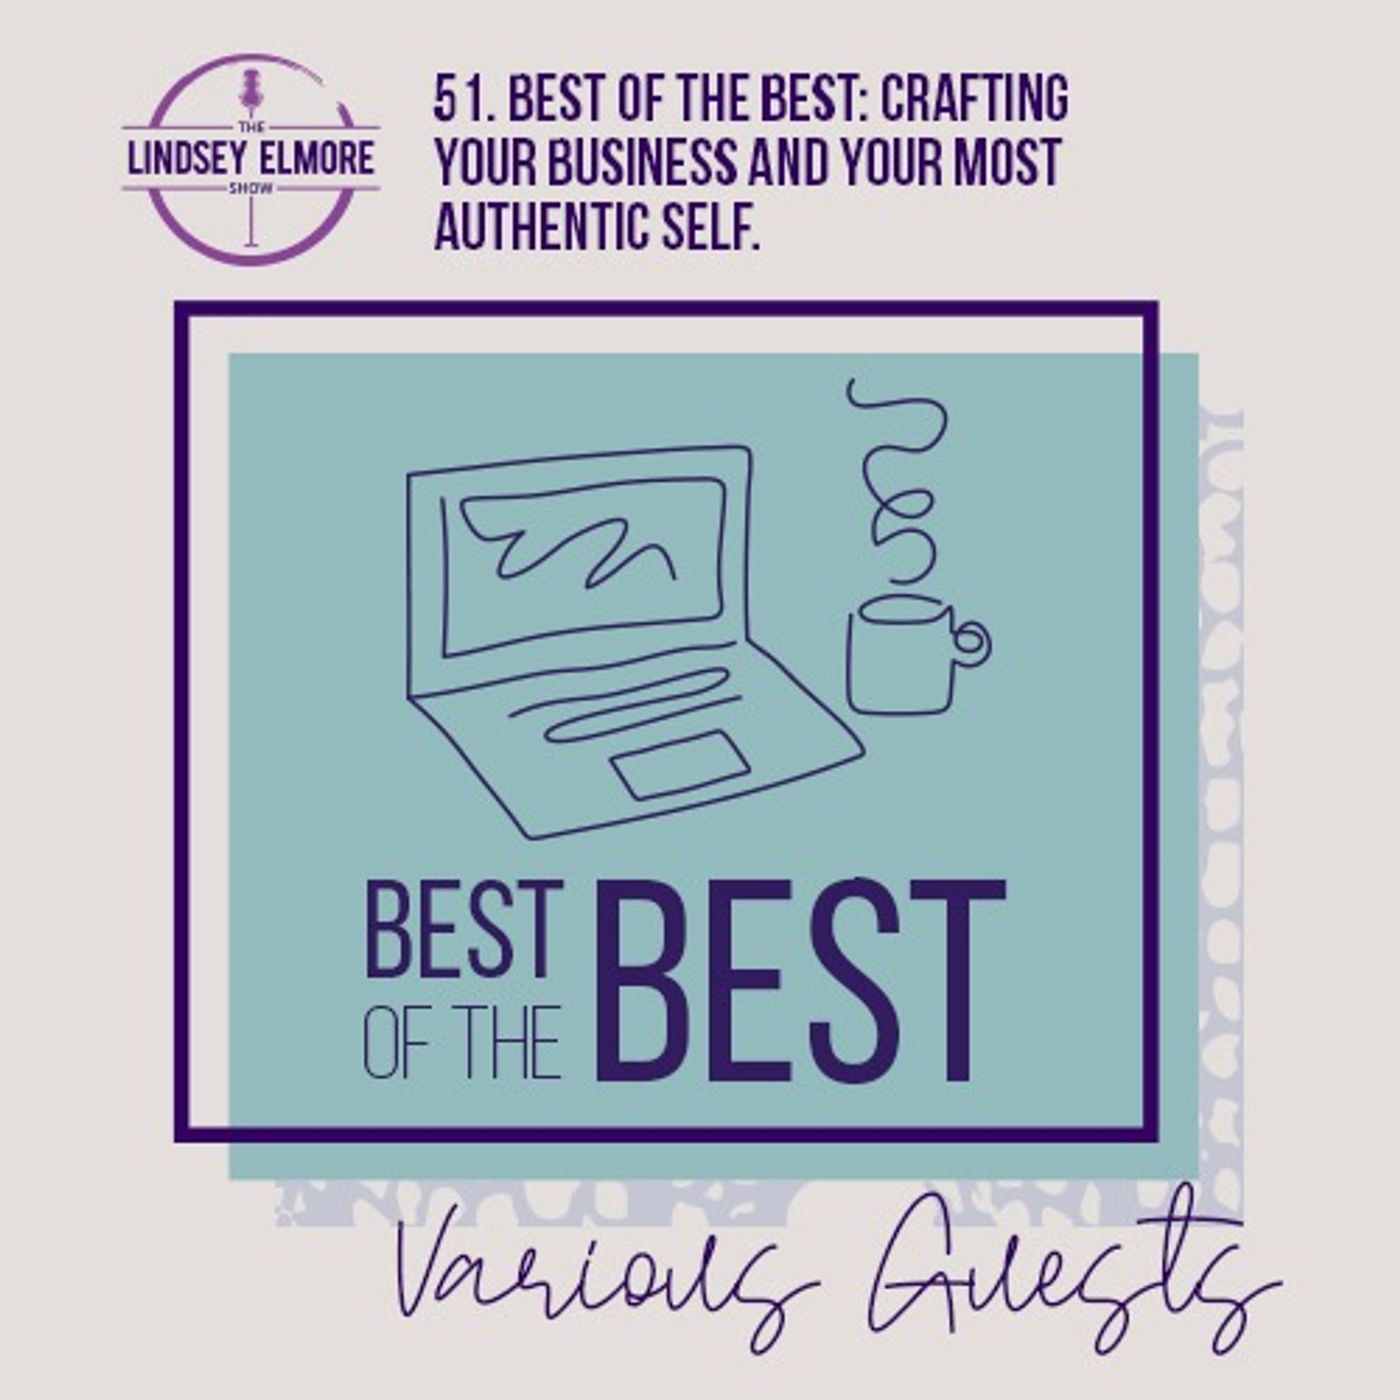 Best of the best: crafting your business and your most authentic self. Interviews with various guests.